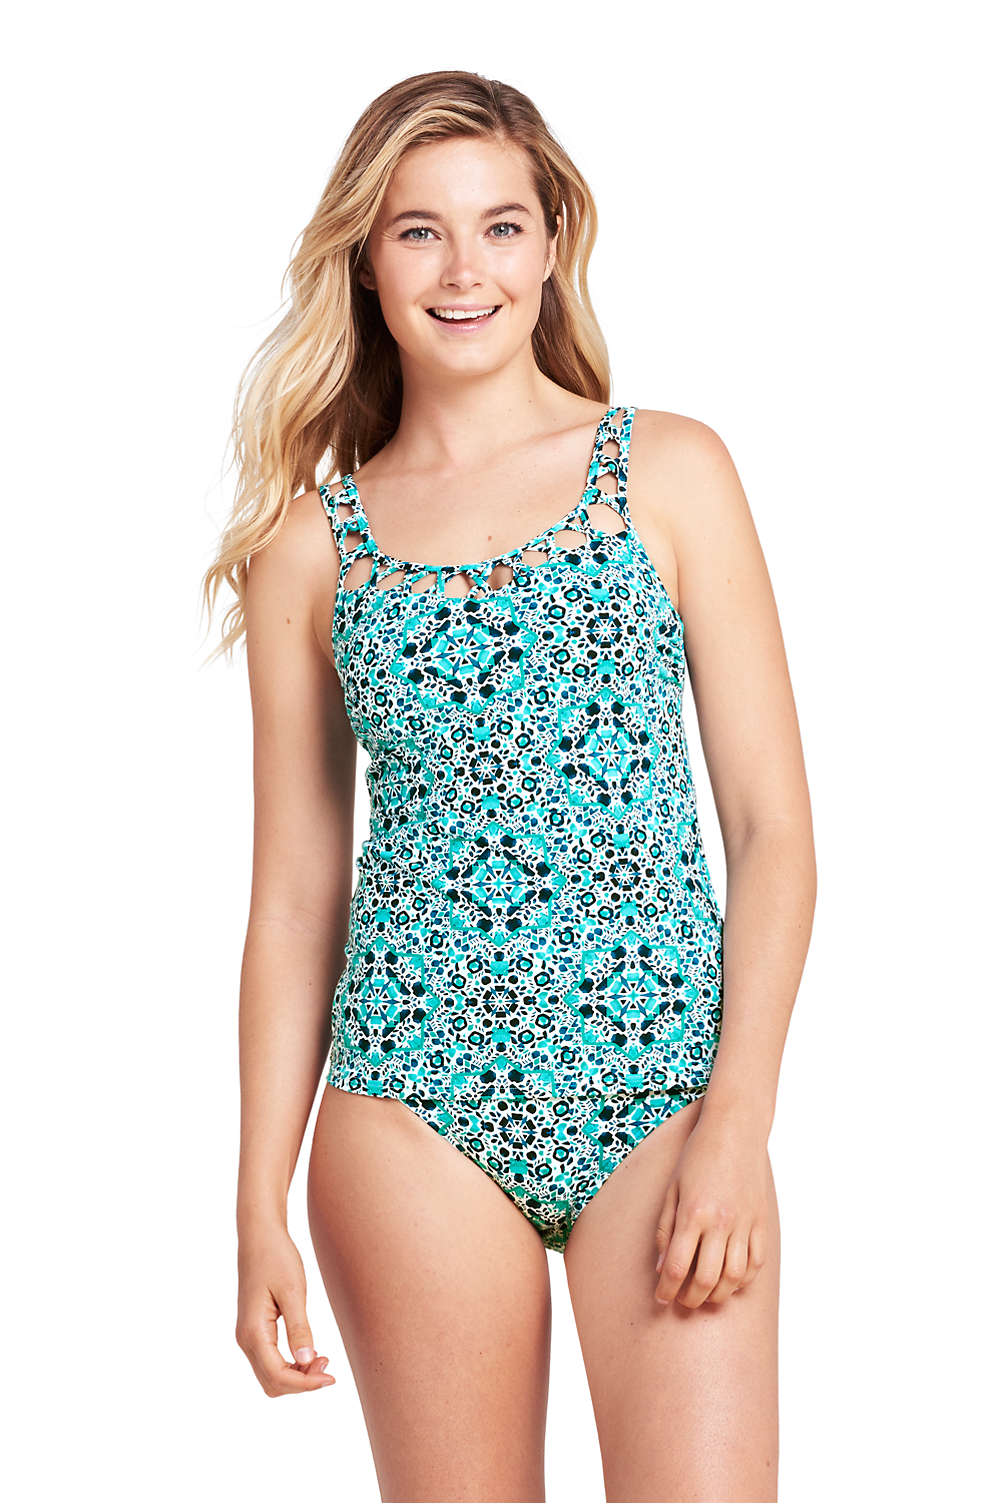 77814b50becb4 Women's Lattice V-neck Tankini Top from Lands' End